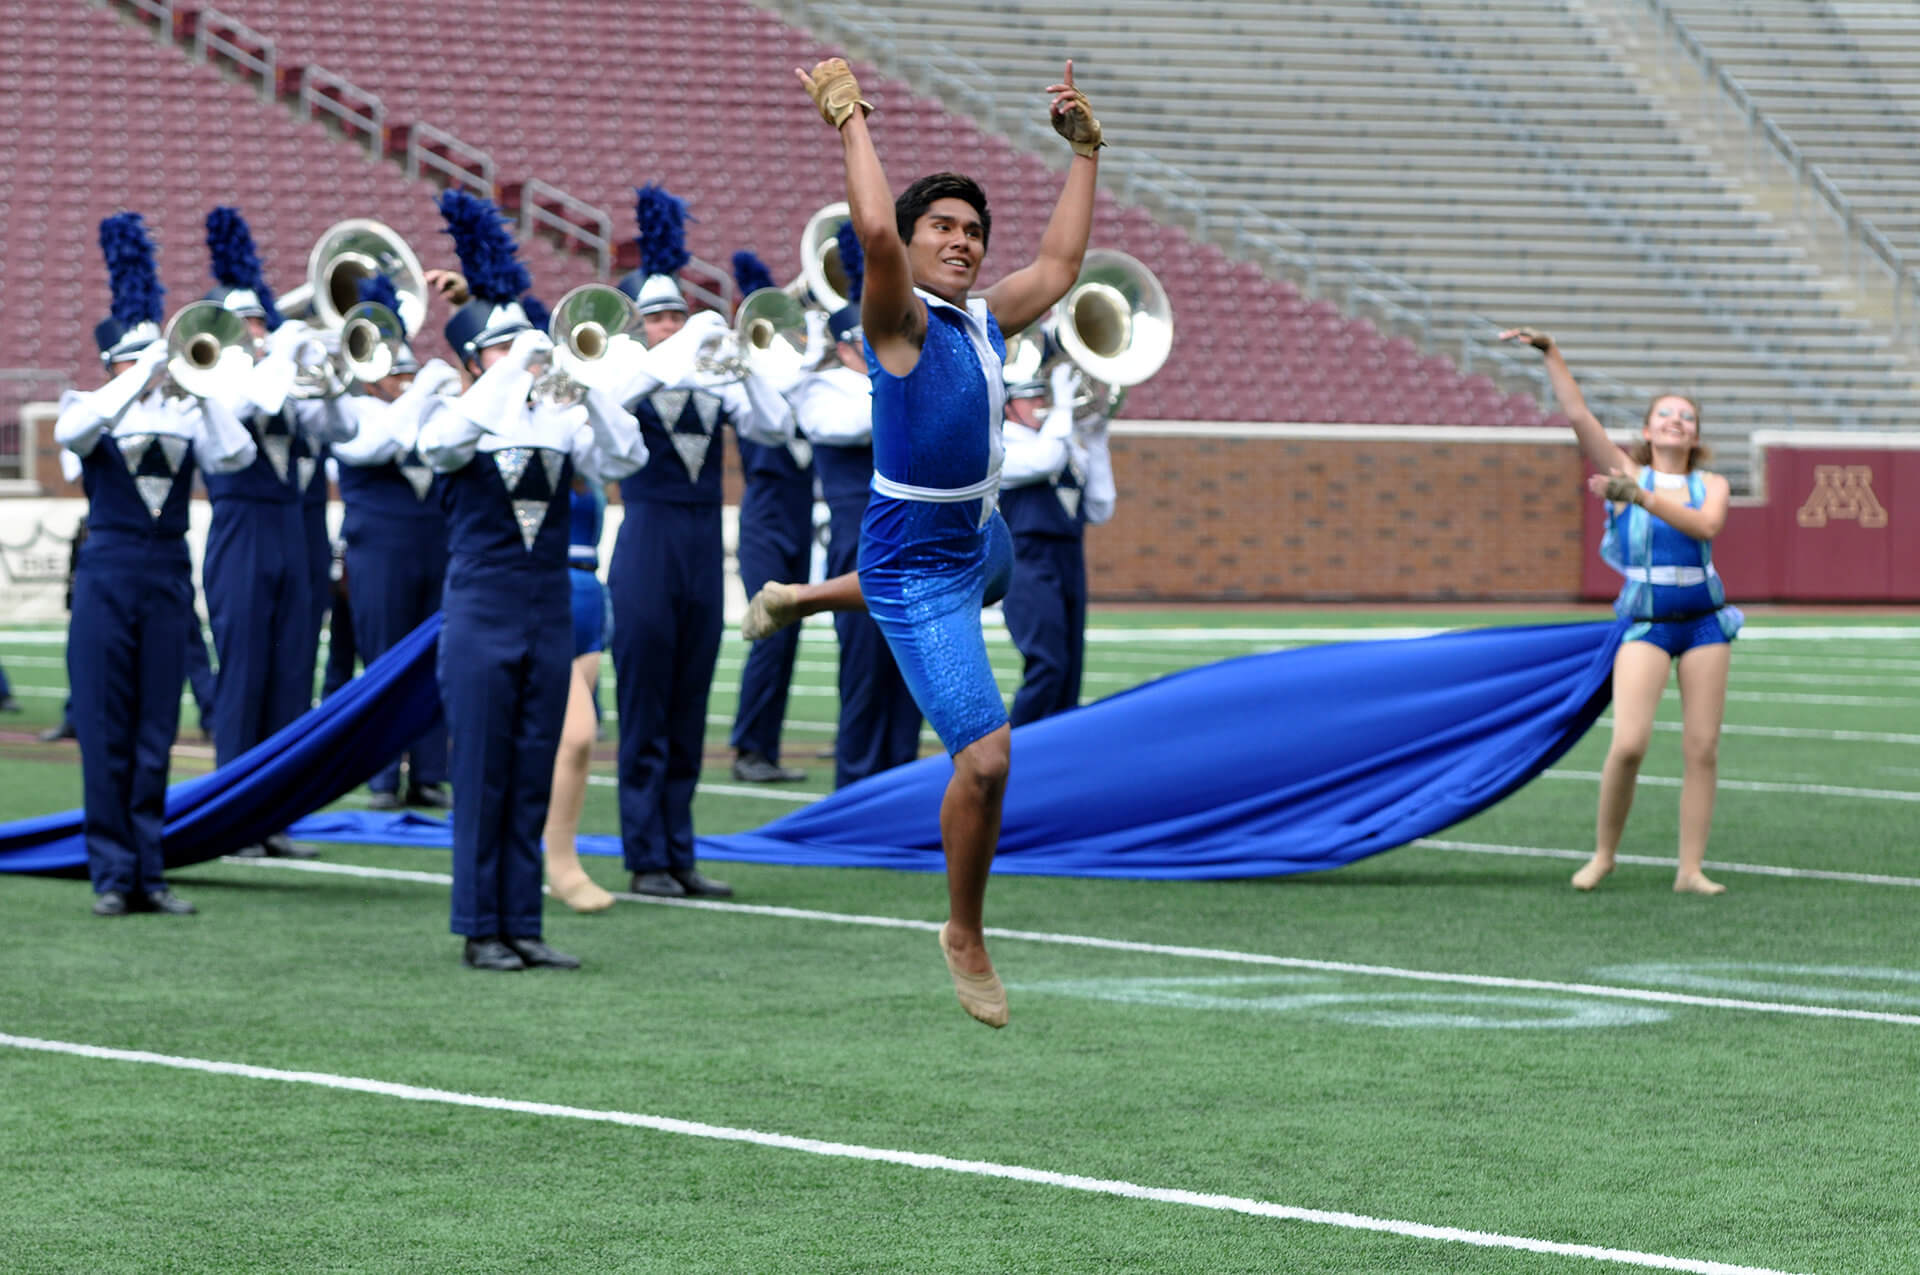 Photos: DCI Minnesota (Minneapolis)